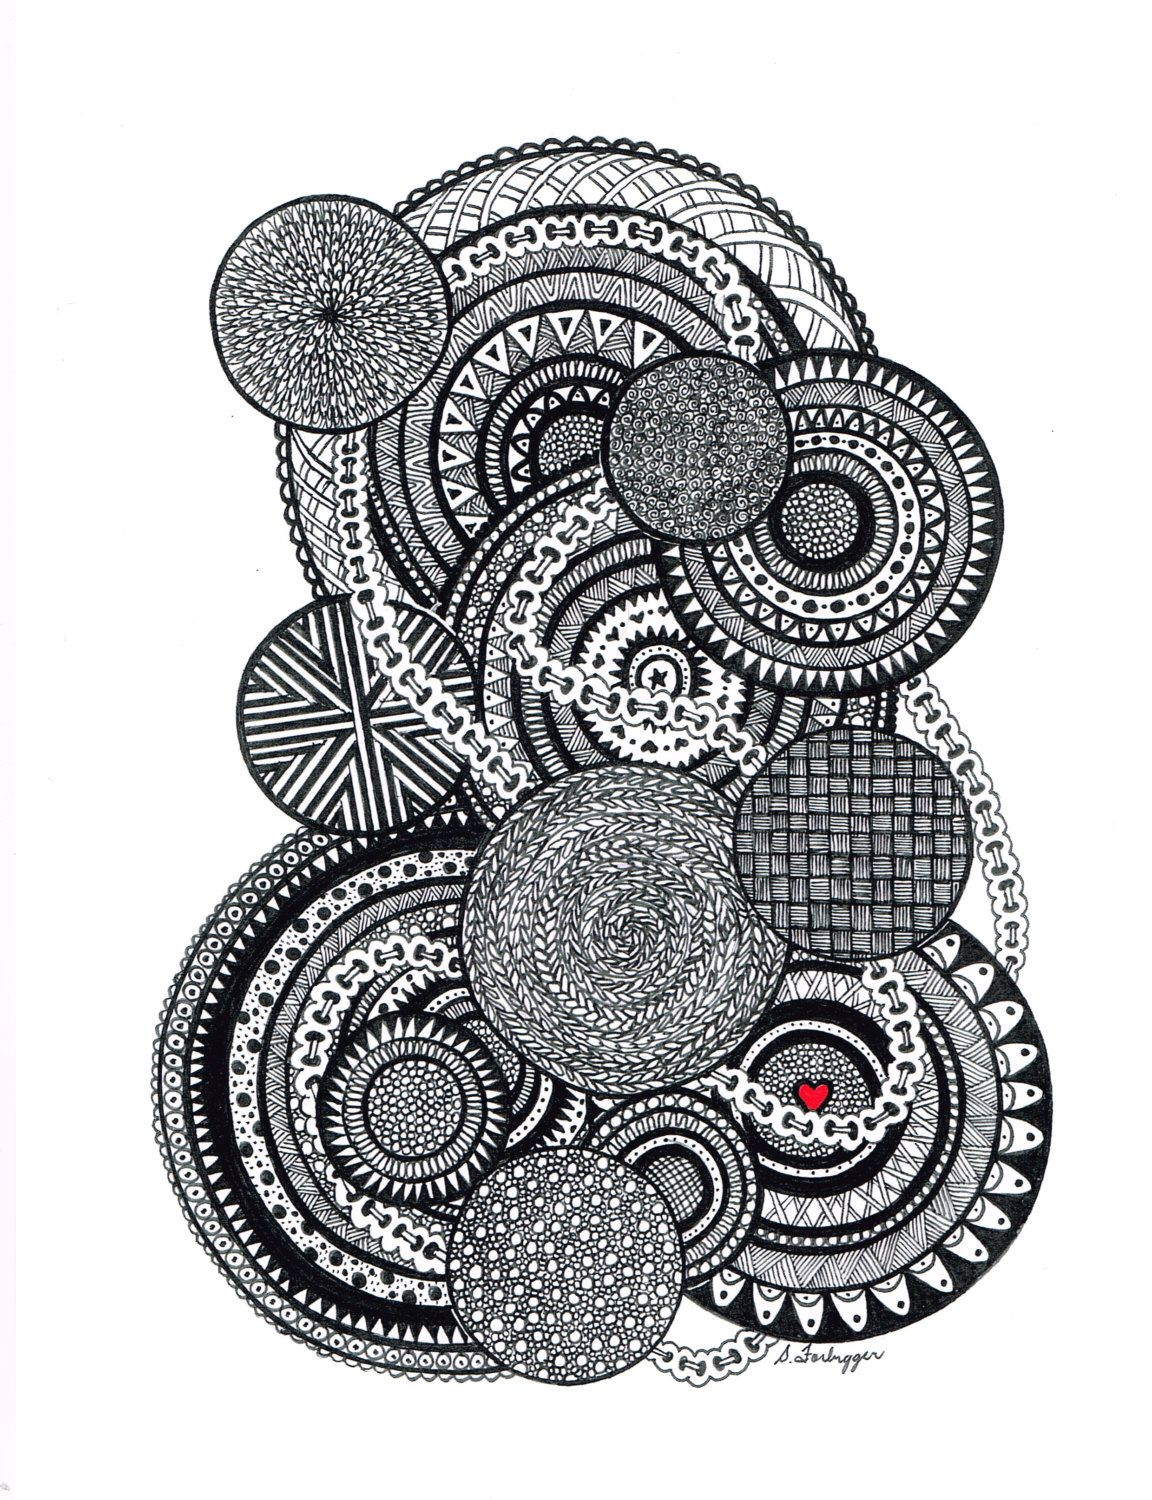 black and white zentangle abstract drawing original art print by limegreenartshop on etsy https